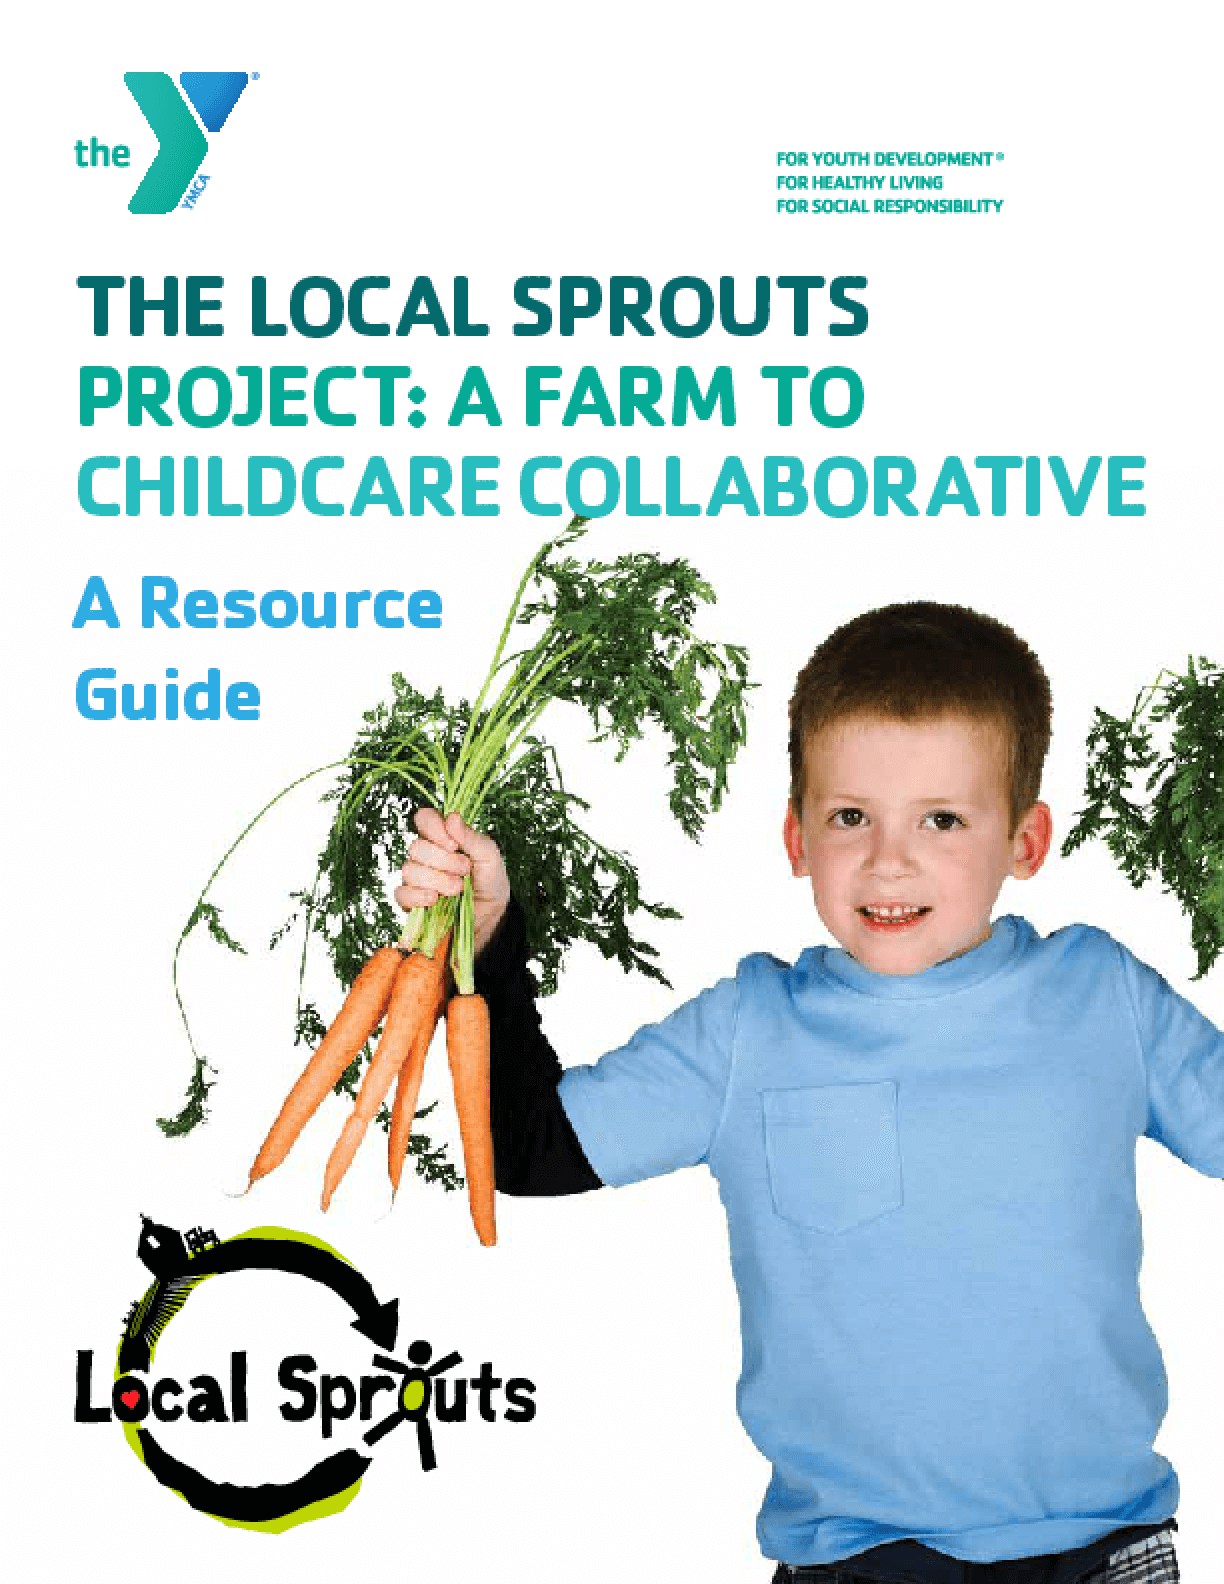 The Local Sprouts Project: A Farm to Childcare Collaborative - A Resource Guide